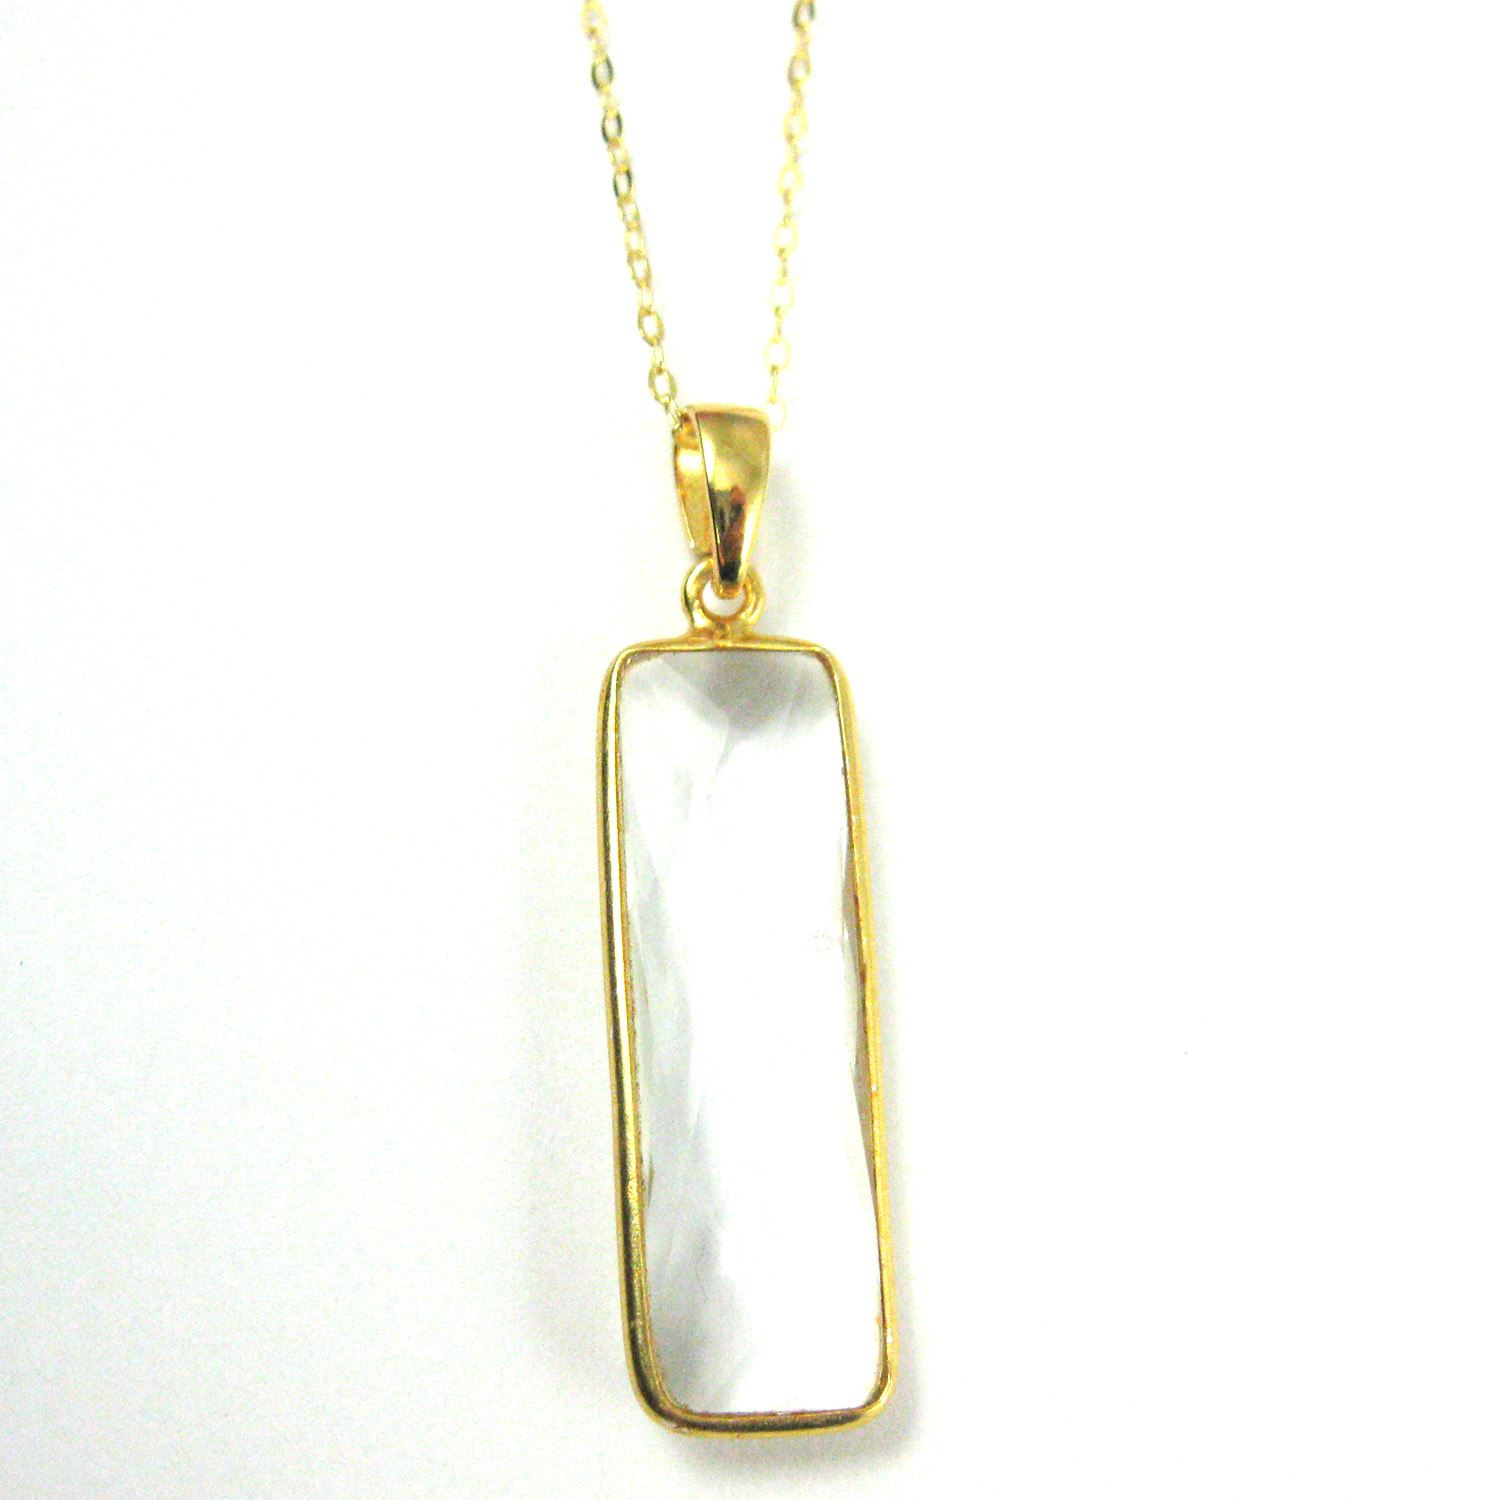 Bezel Gemstone Pendant with Bail - Gold plated Sterling Silver Rectangle Gem Pendant - Ready for Necklace - 40mm - Crytsal Quartz